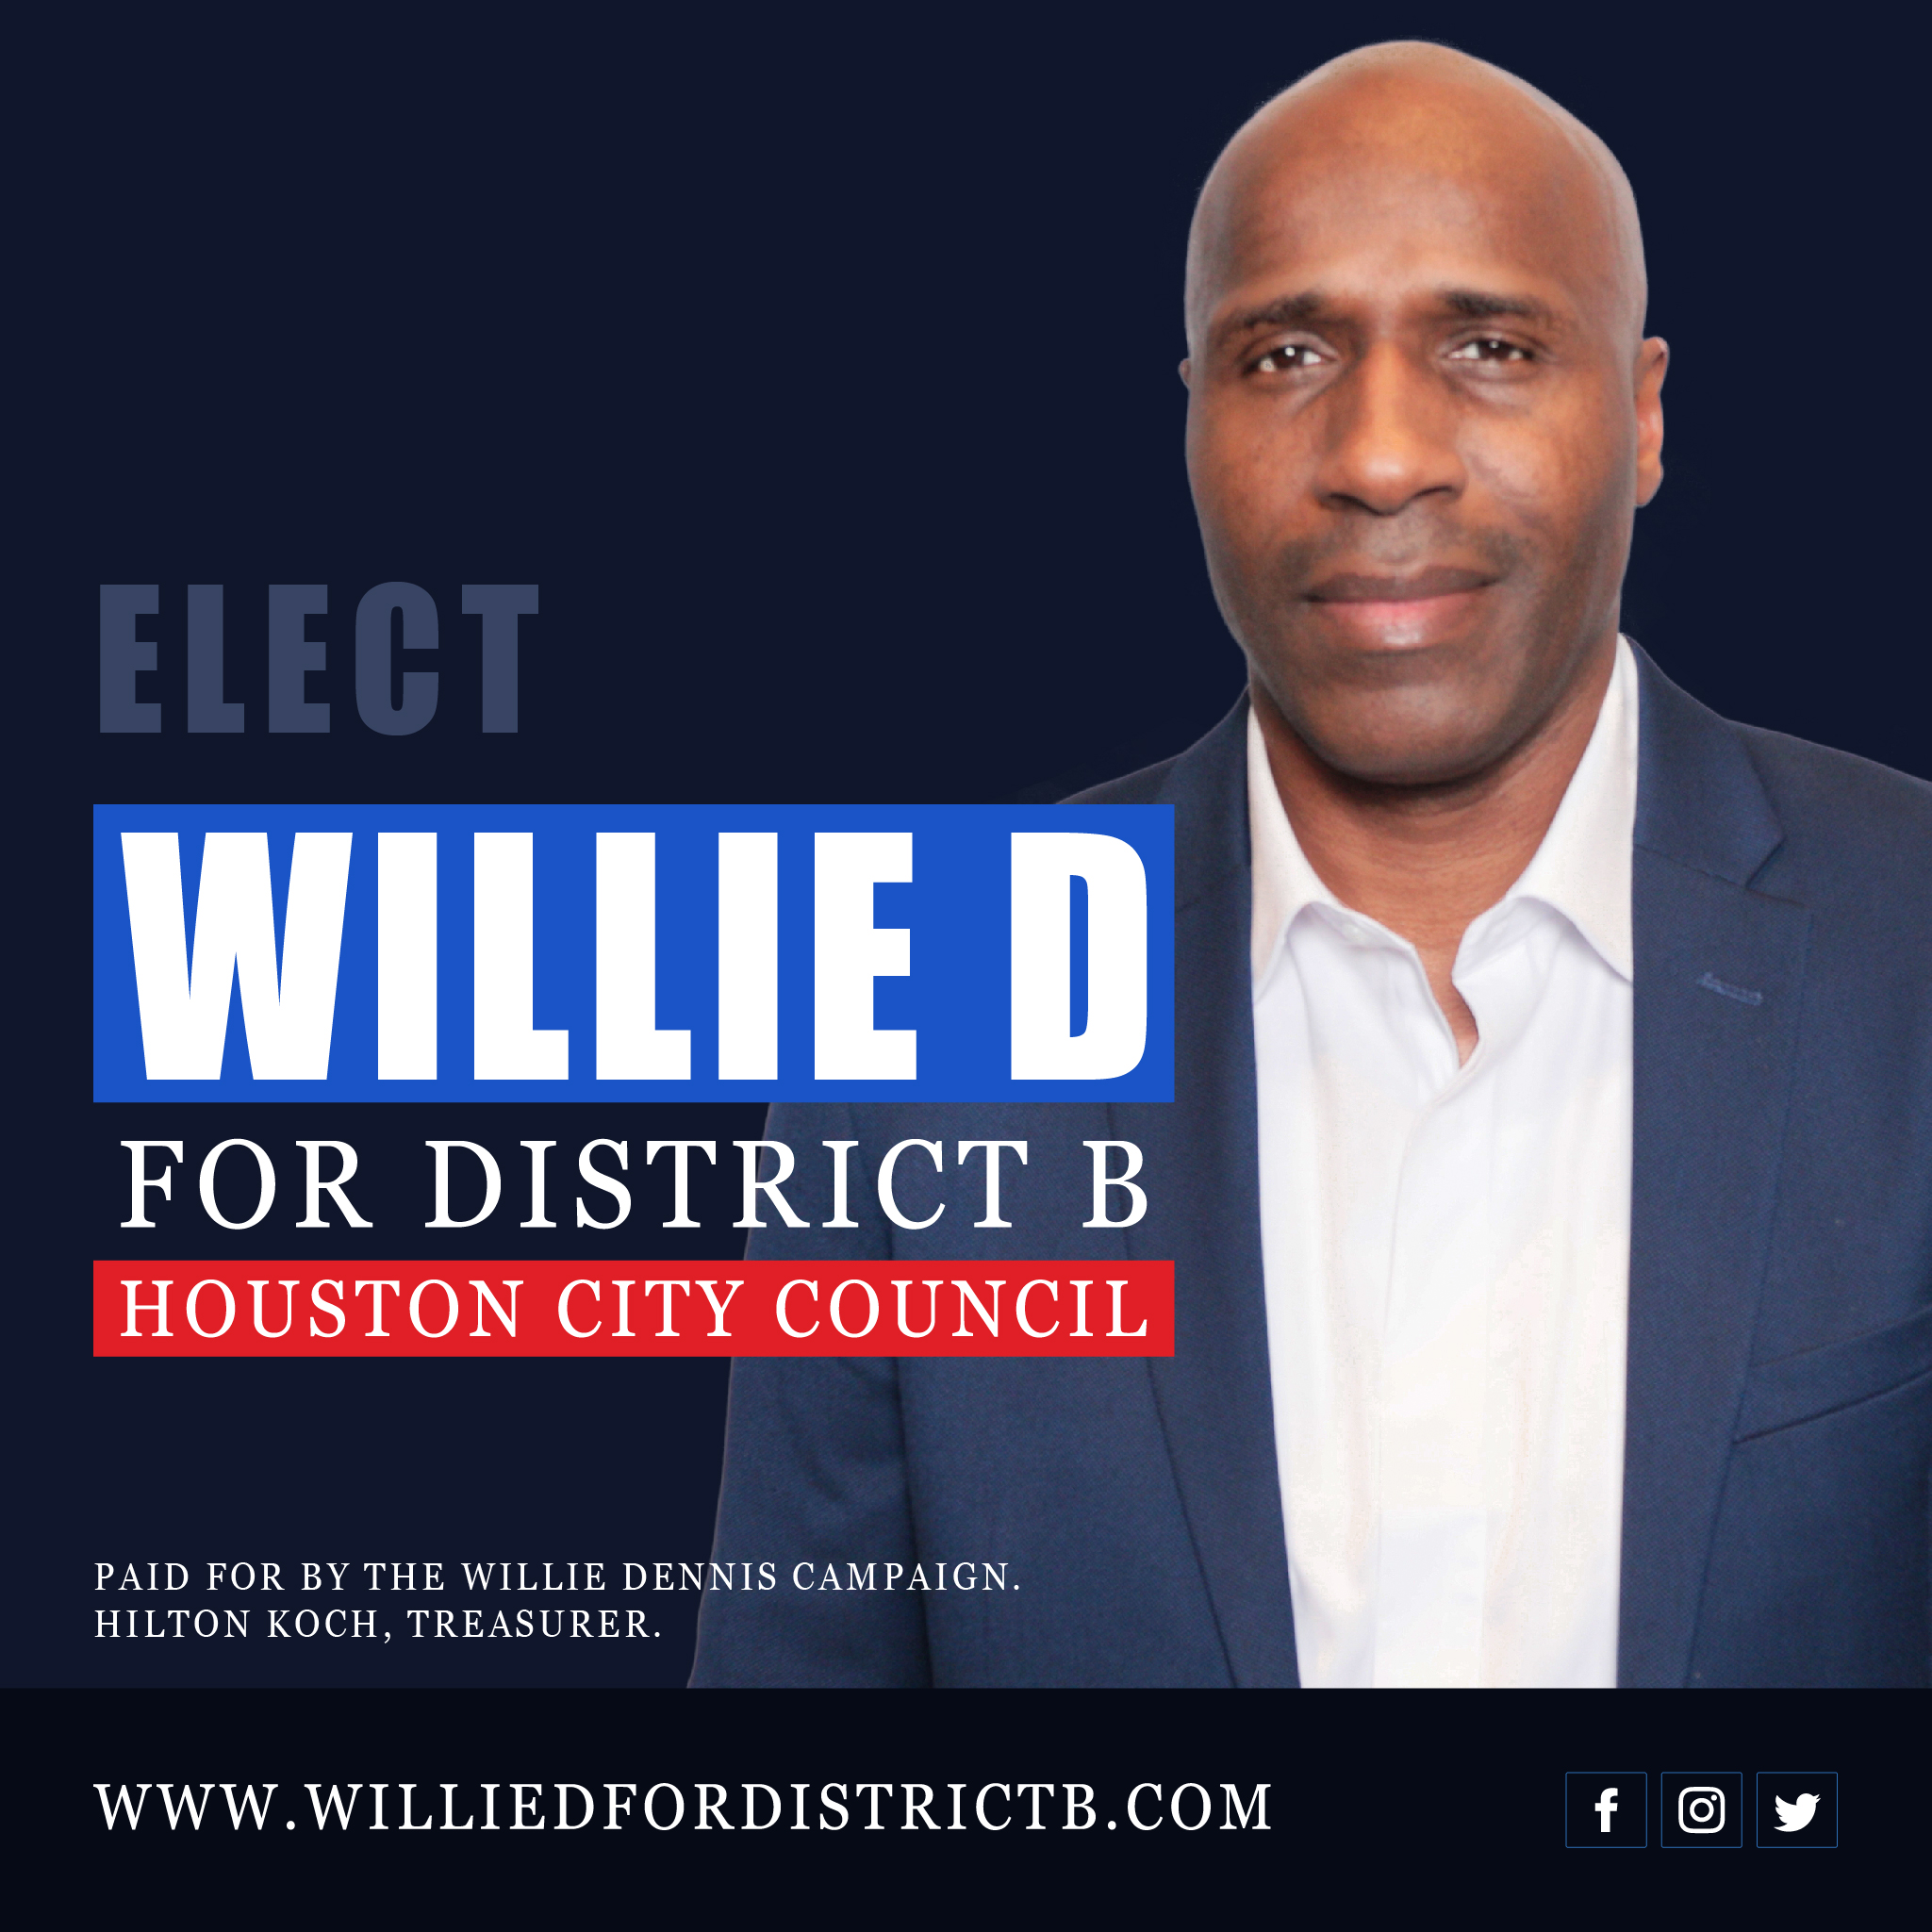 Willie D Instagram ads-01.jpg